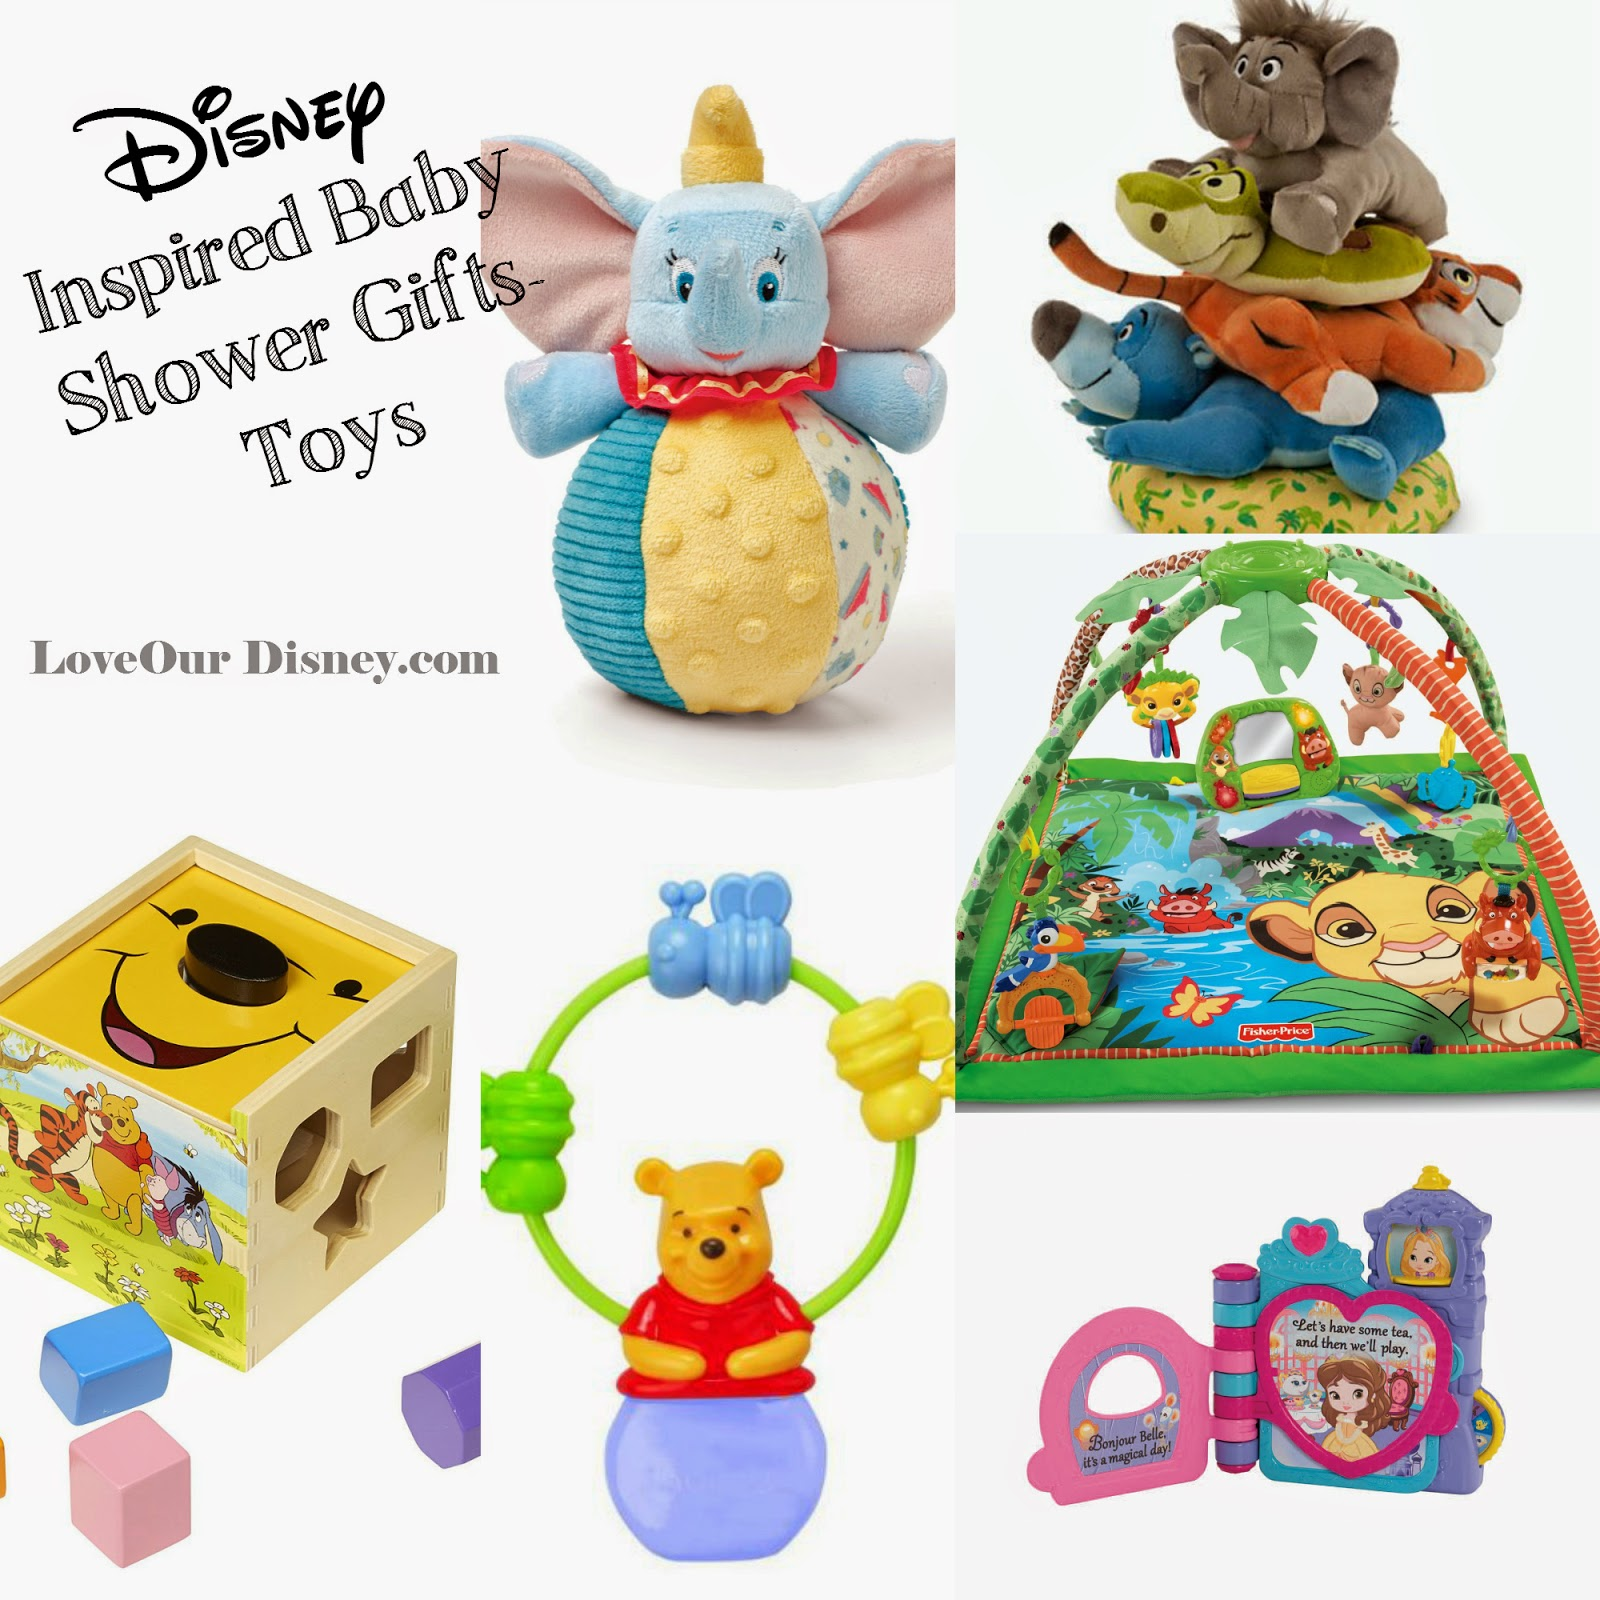 Disney Toys That Make Great Baby Shower Gifts LoveOurDisney.com